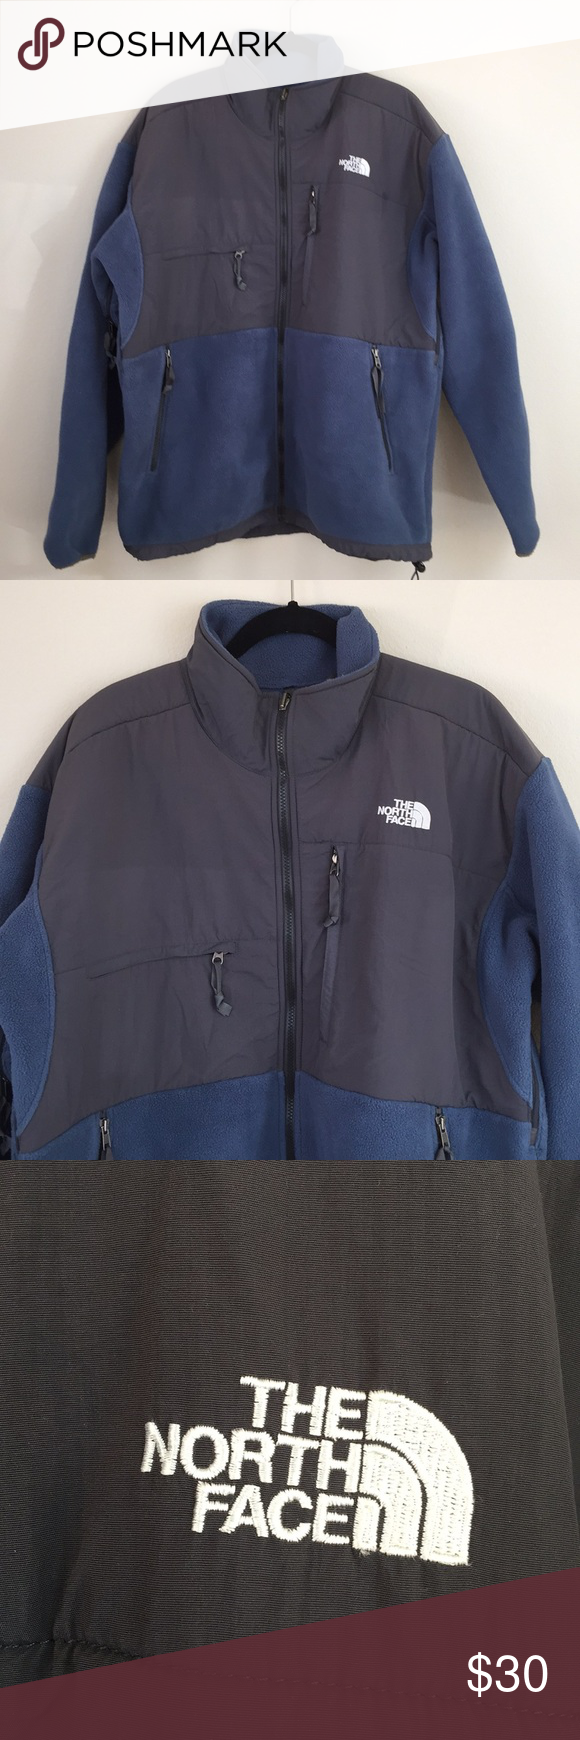 The north face blue gray zip up fleece sweater my posh picks